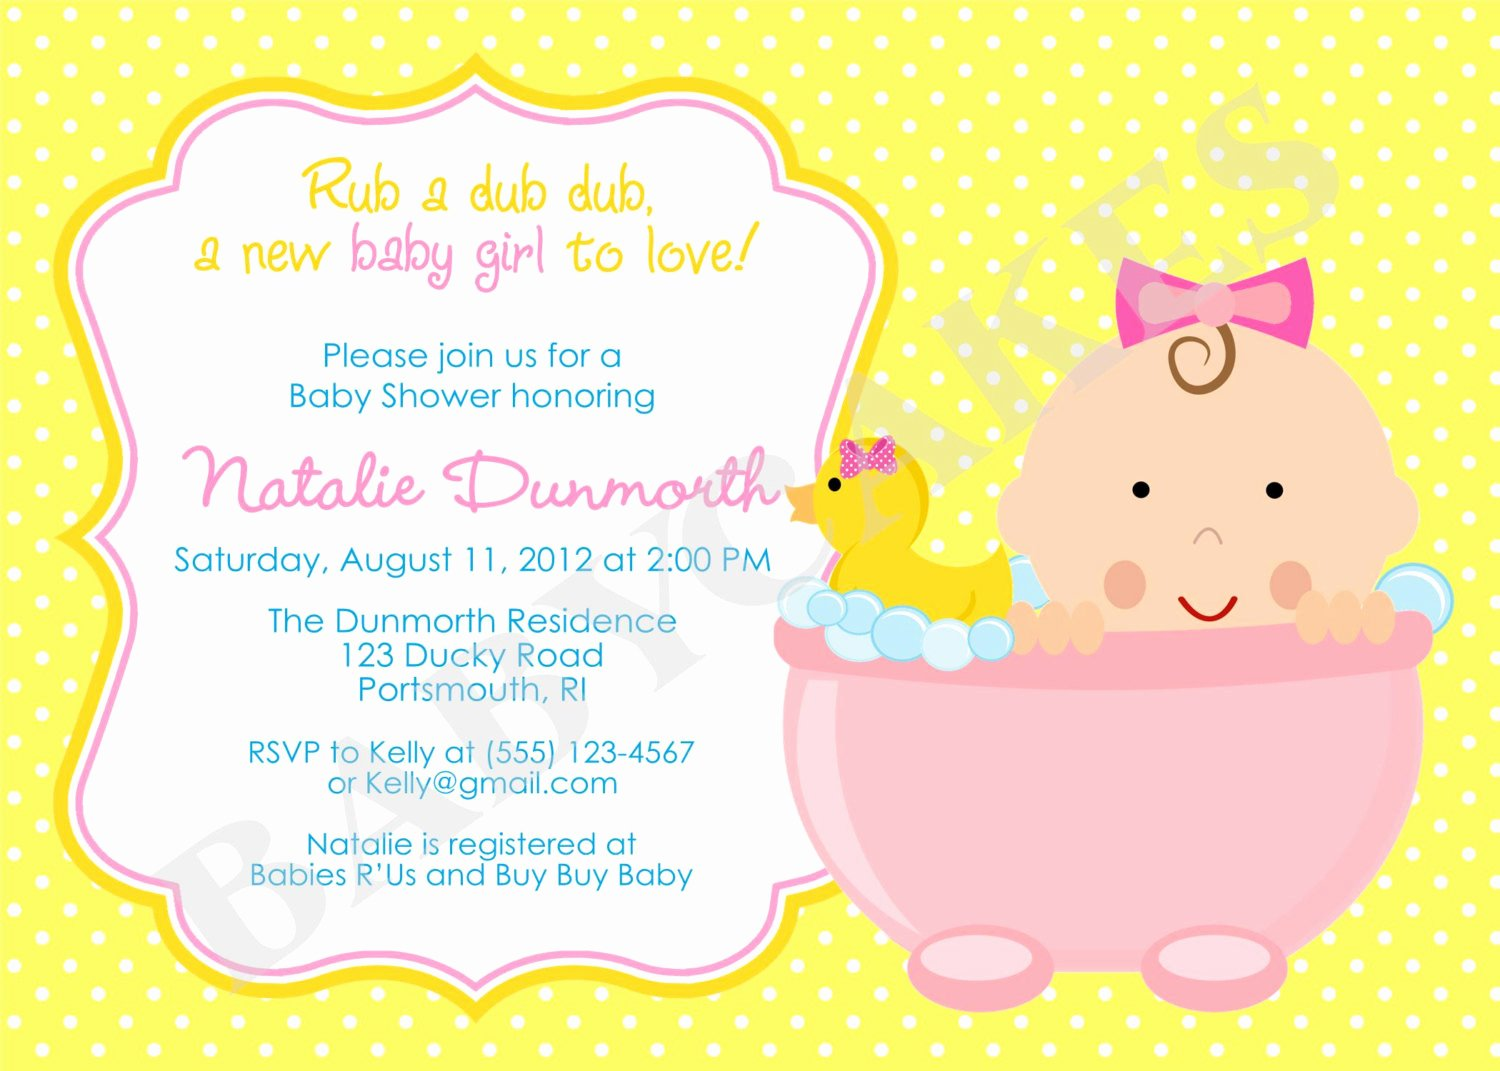 Free Baby Shower Templates Awesome How to Plan Rubber Ducky Baby Shower Ideas